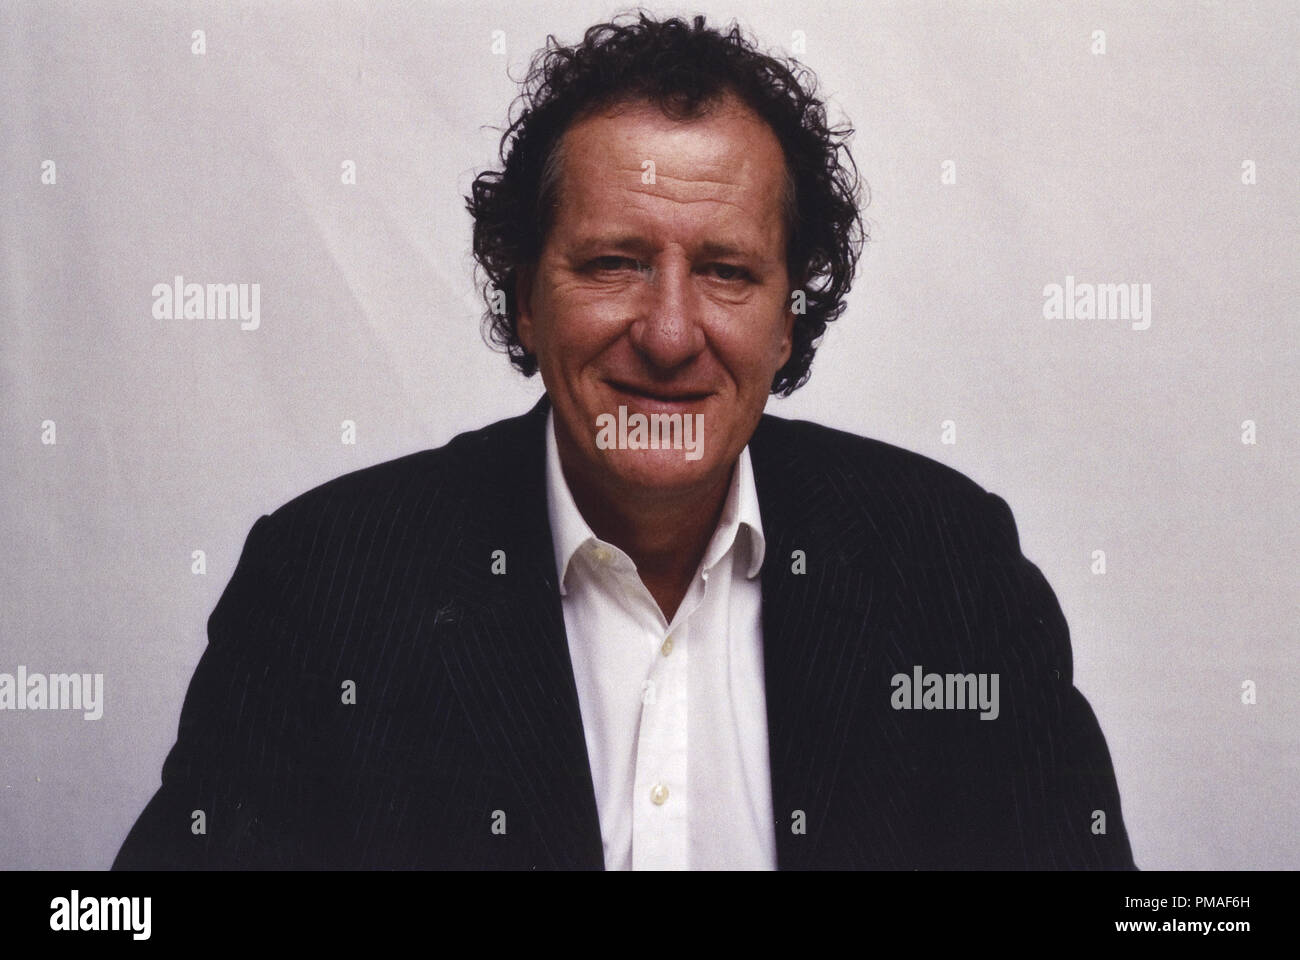 Portrait of Geoffrey Rush, circa 2005 © JRC /The Hollywood Archive - All Rights Reserved  File Reference # 32633_302JRC - Stock Image